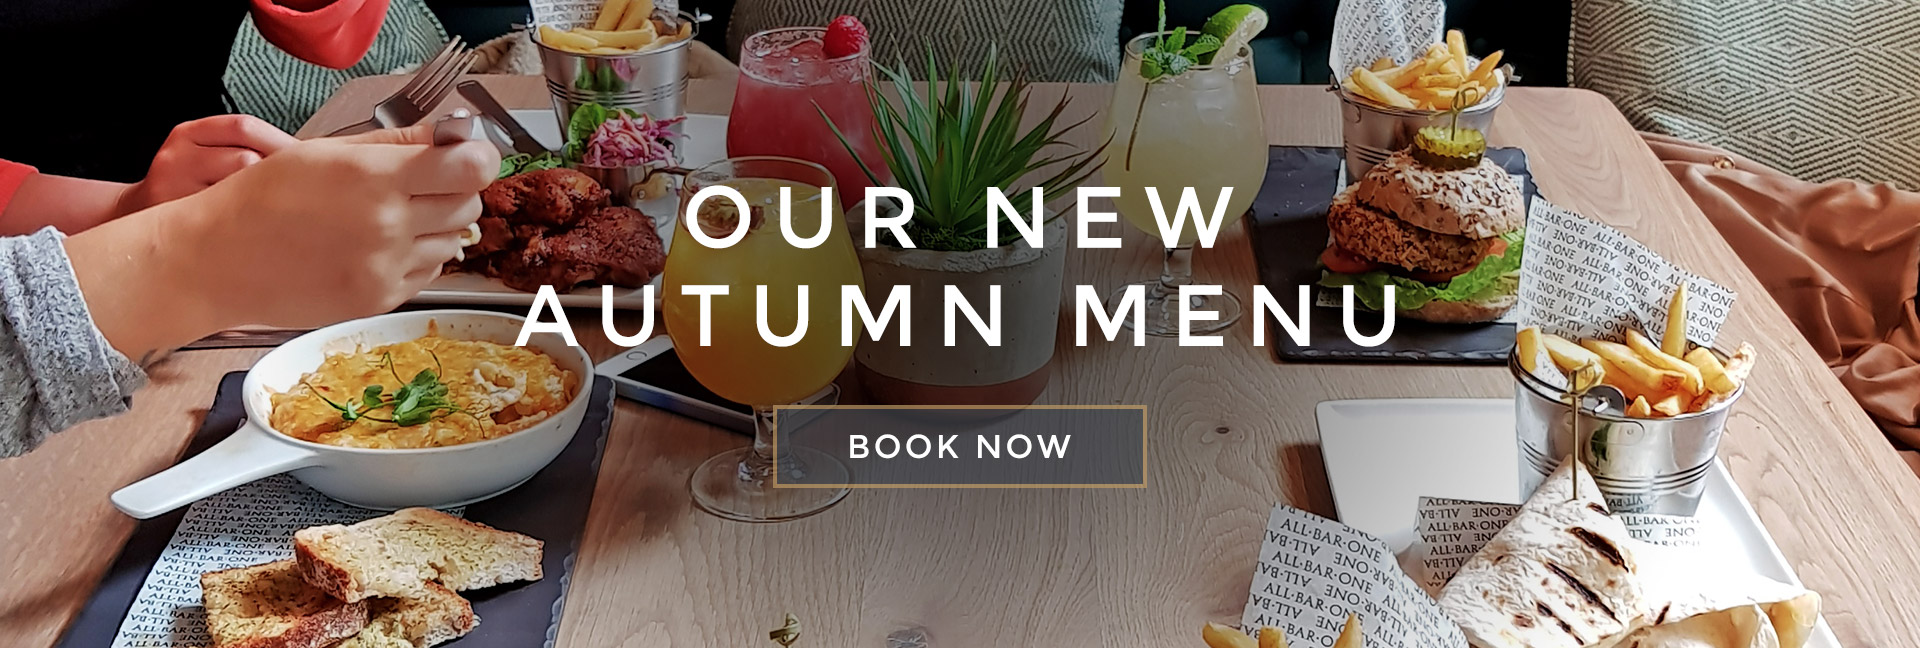 Our new Autumn menu at All Bar One Kingsway - Book now